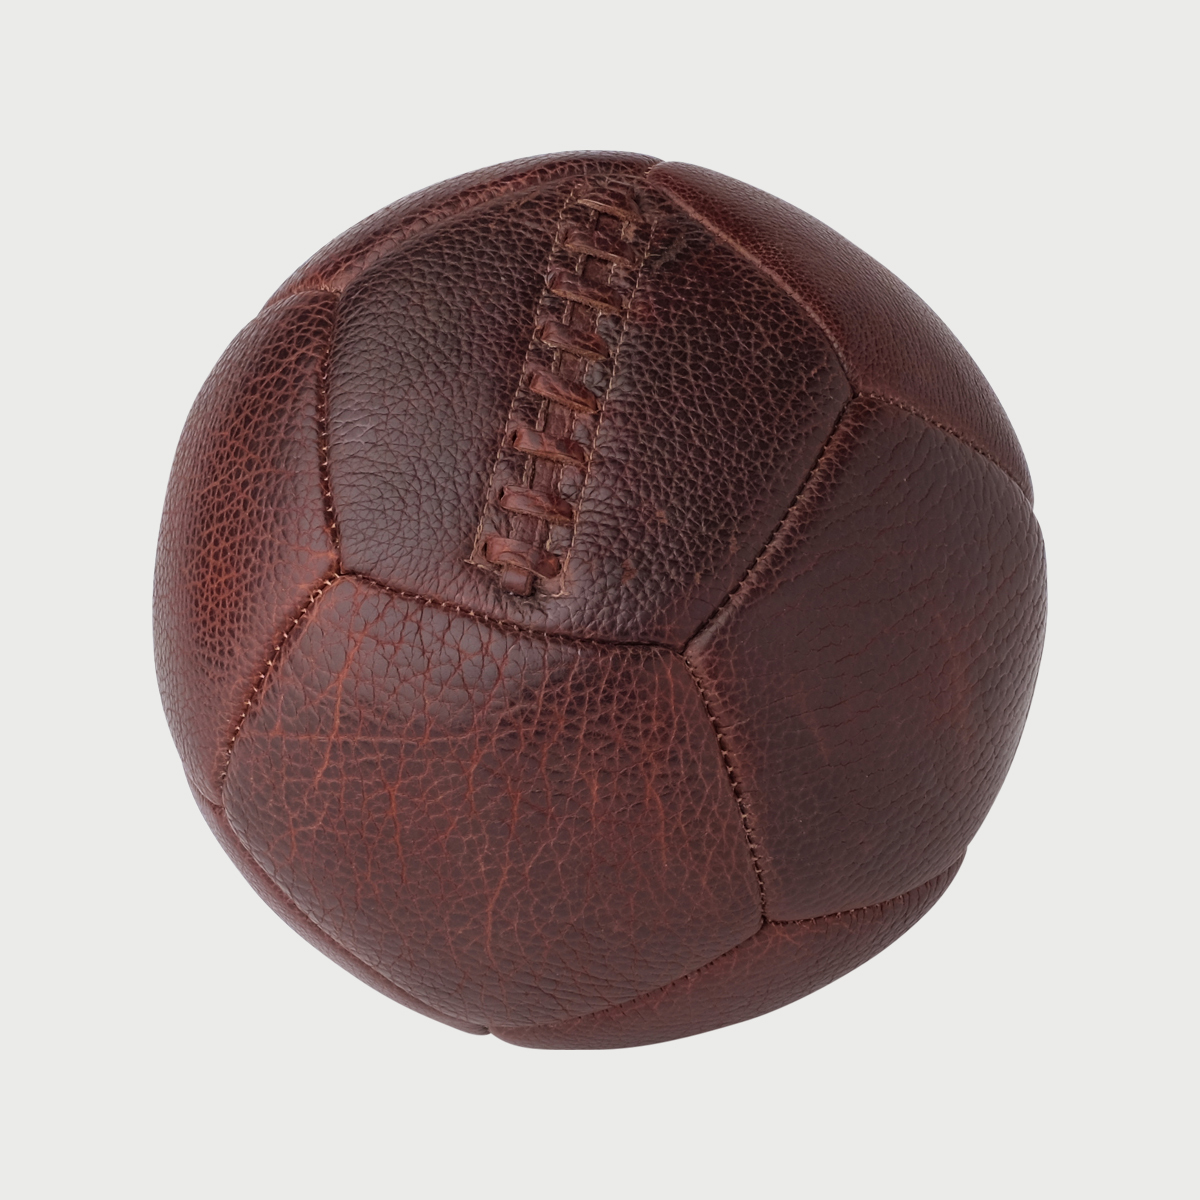 Weighted perisphere   weighted ball